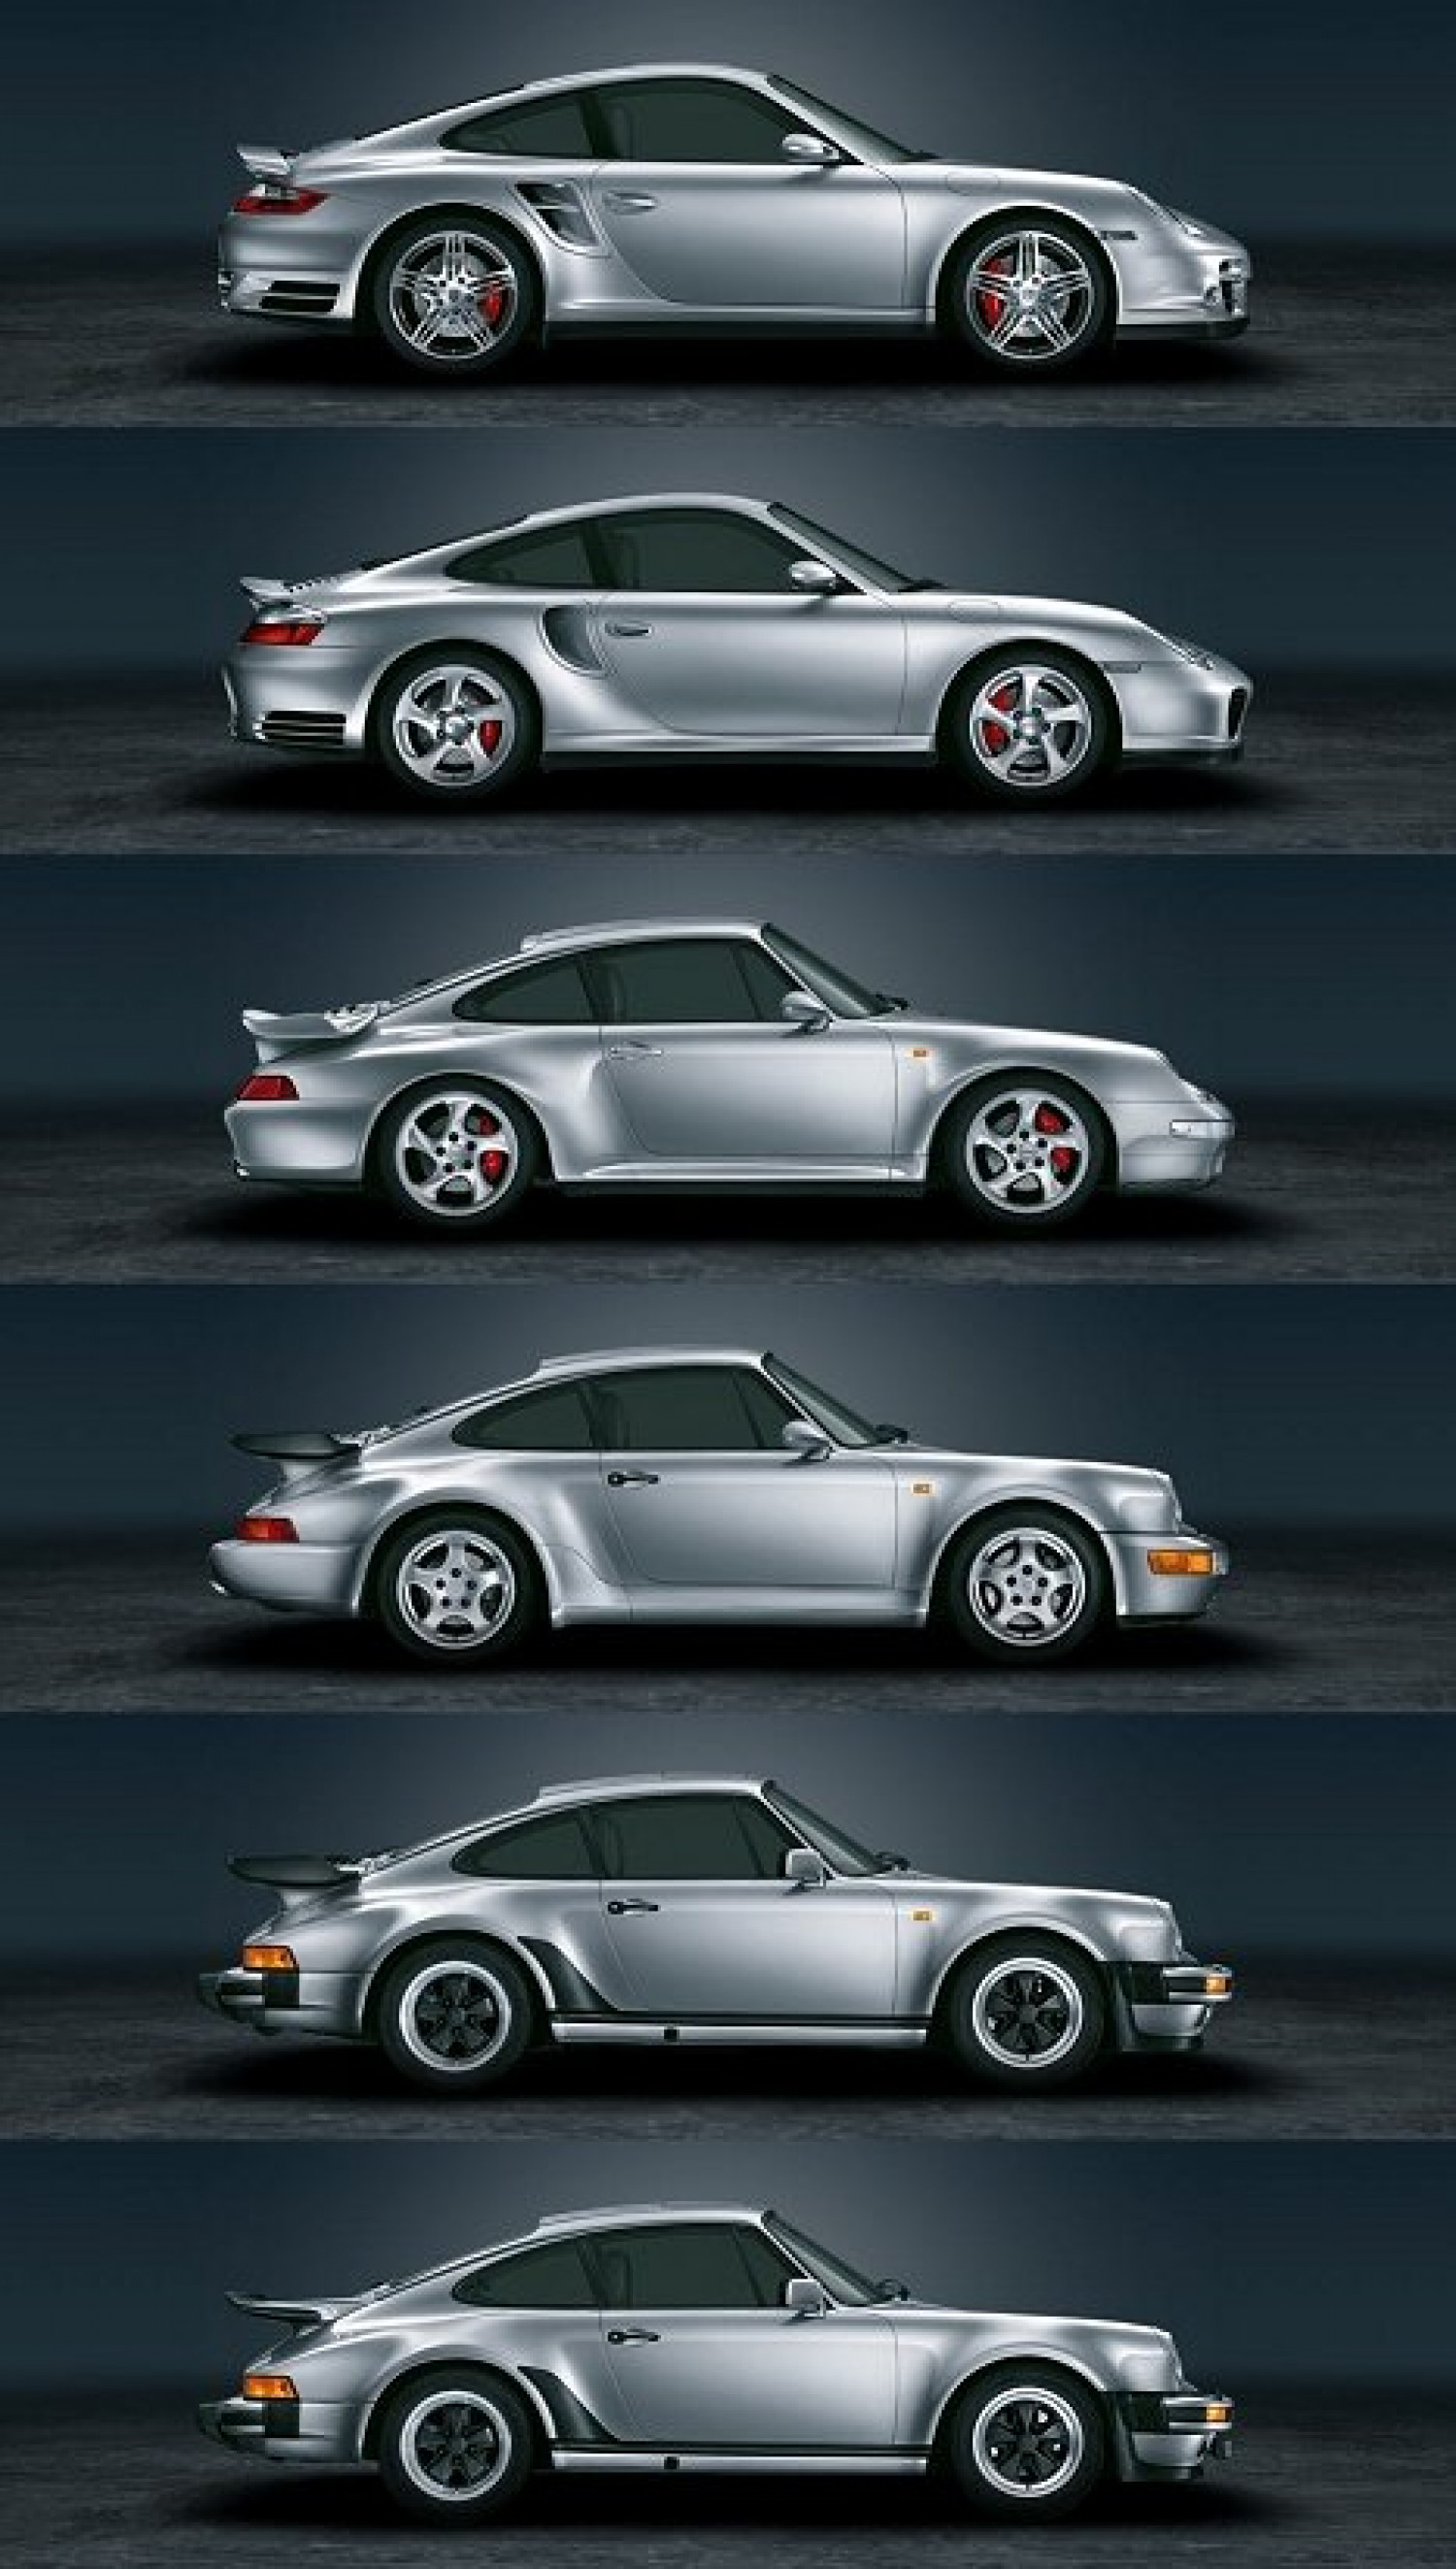 Porsche 911 by Decade Infographic